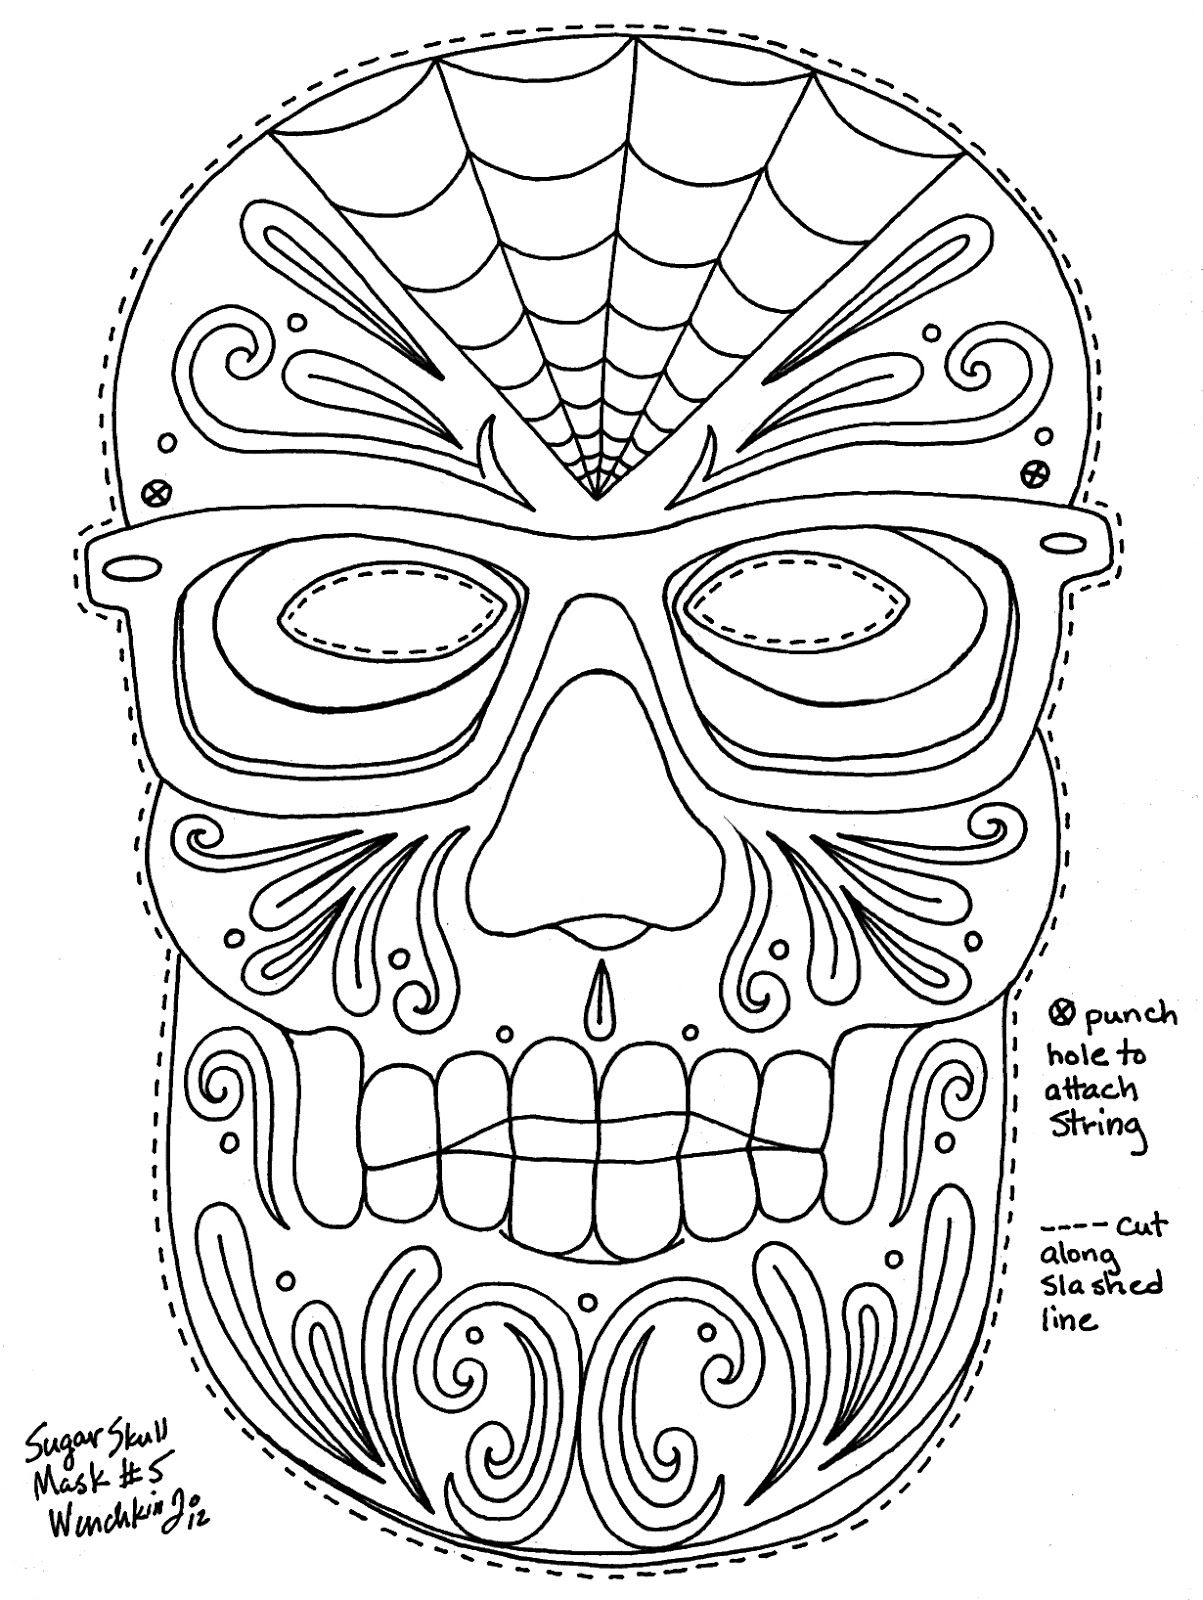 dia de los muertos coloring pages wenchkins coloring pages dia de los hipster skull mask